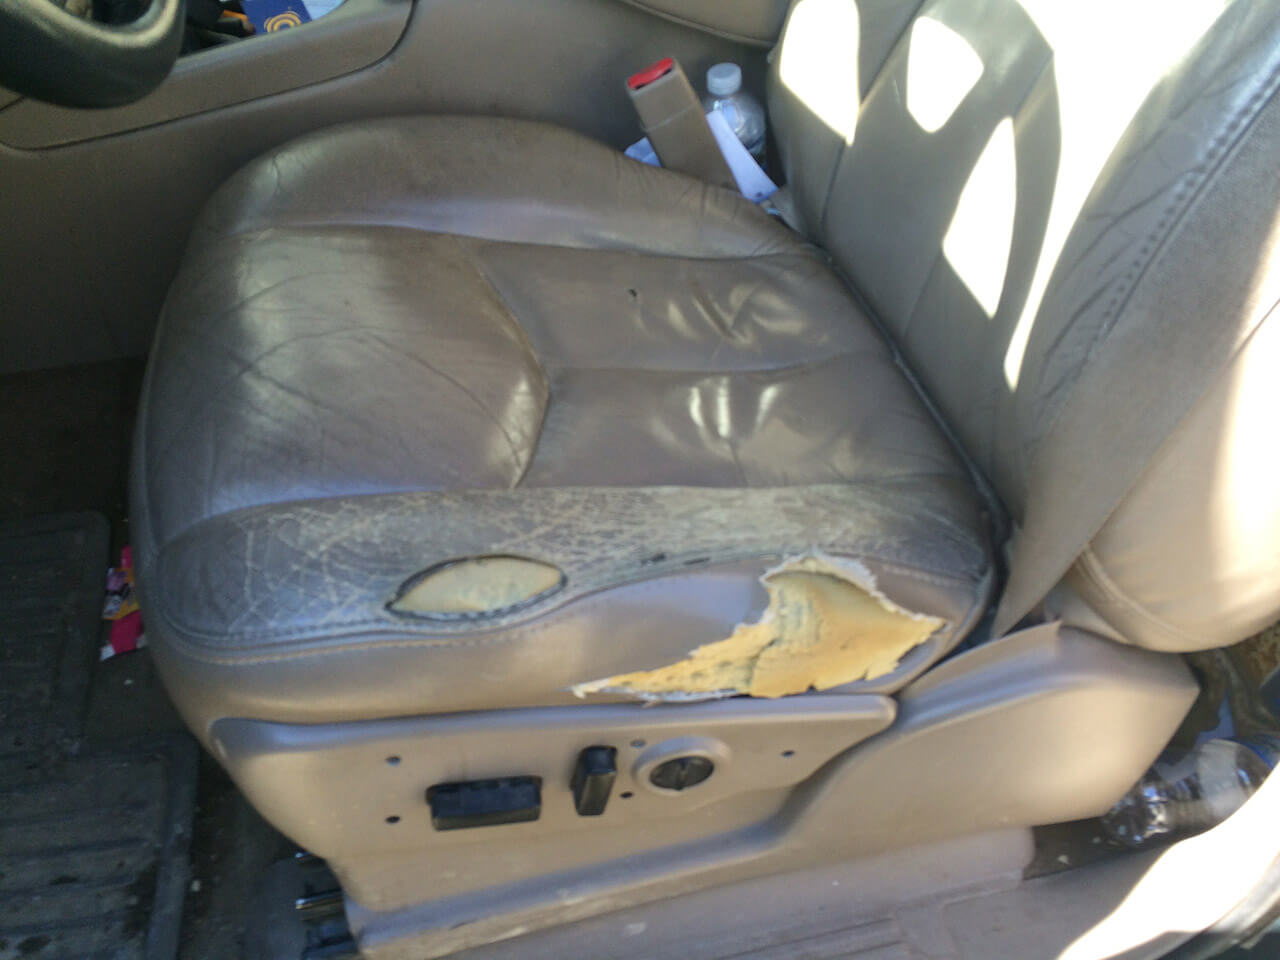 Auto Artisans Inc - Before and After - Upholstery of a Van Seat - Before